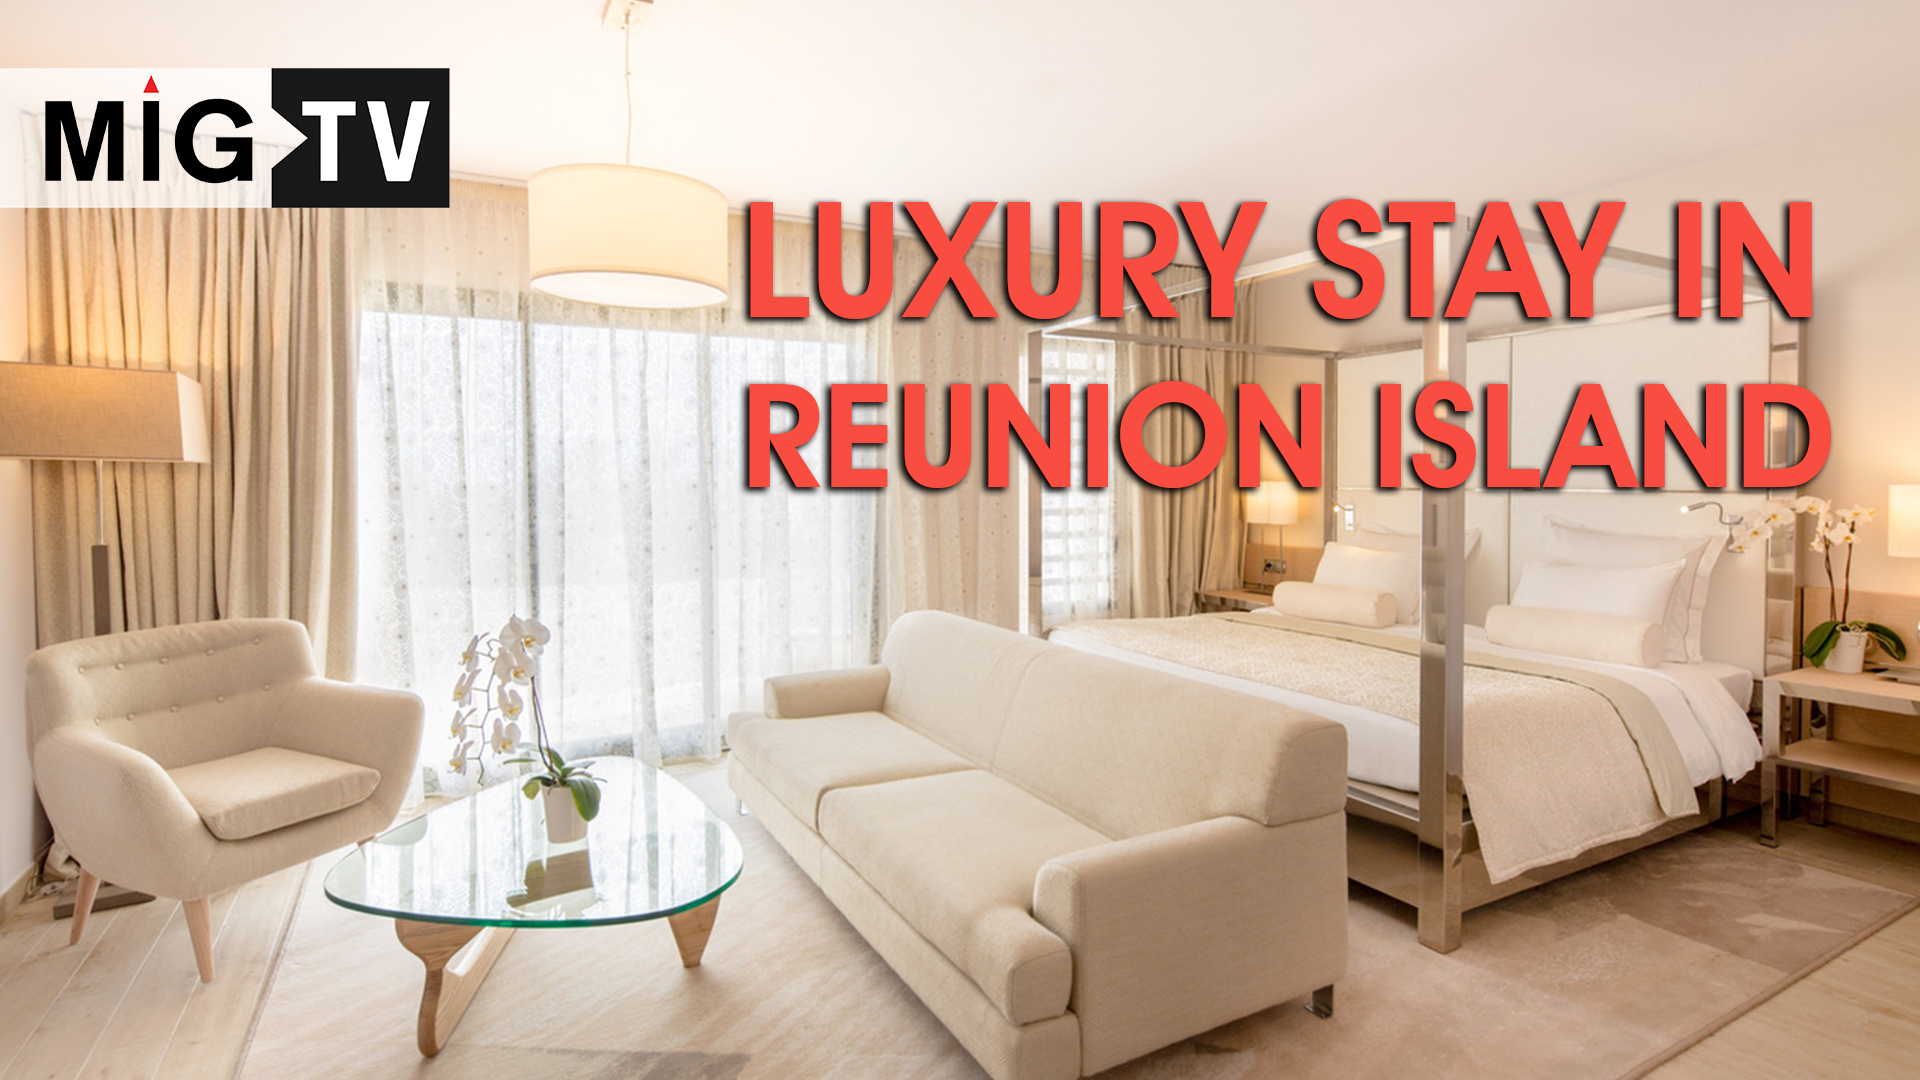 Luxury stay in Reunion Island